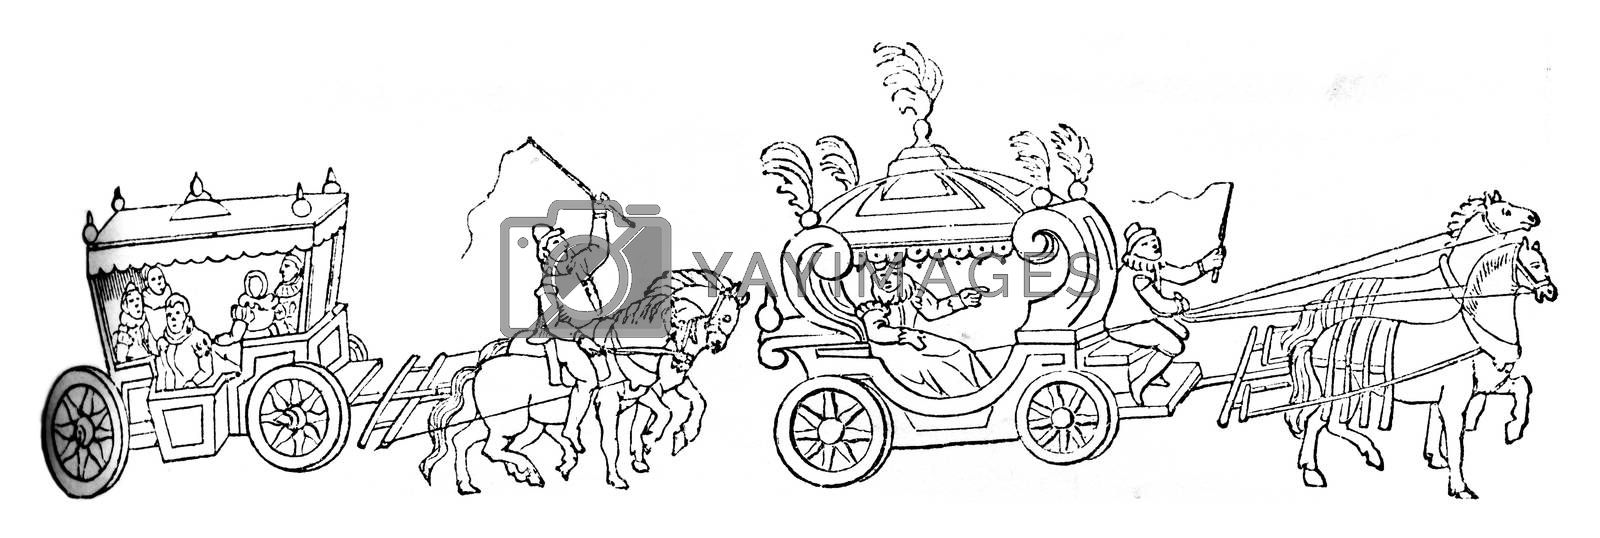 Cart Queen Elizabeth and its sequel, to post a printout of that time, vintage engraved illustration. Colorful History of England, 1837.